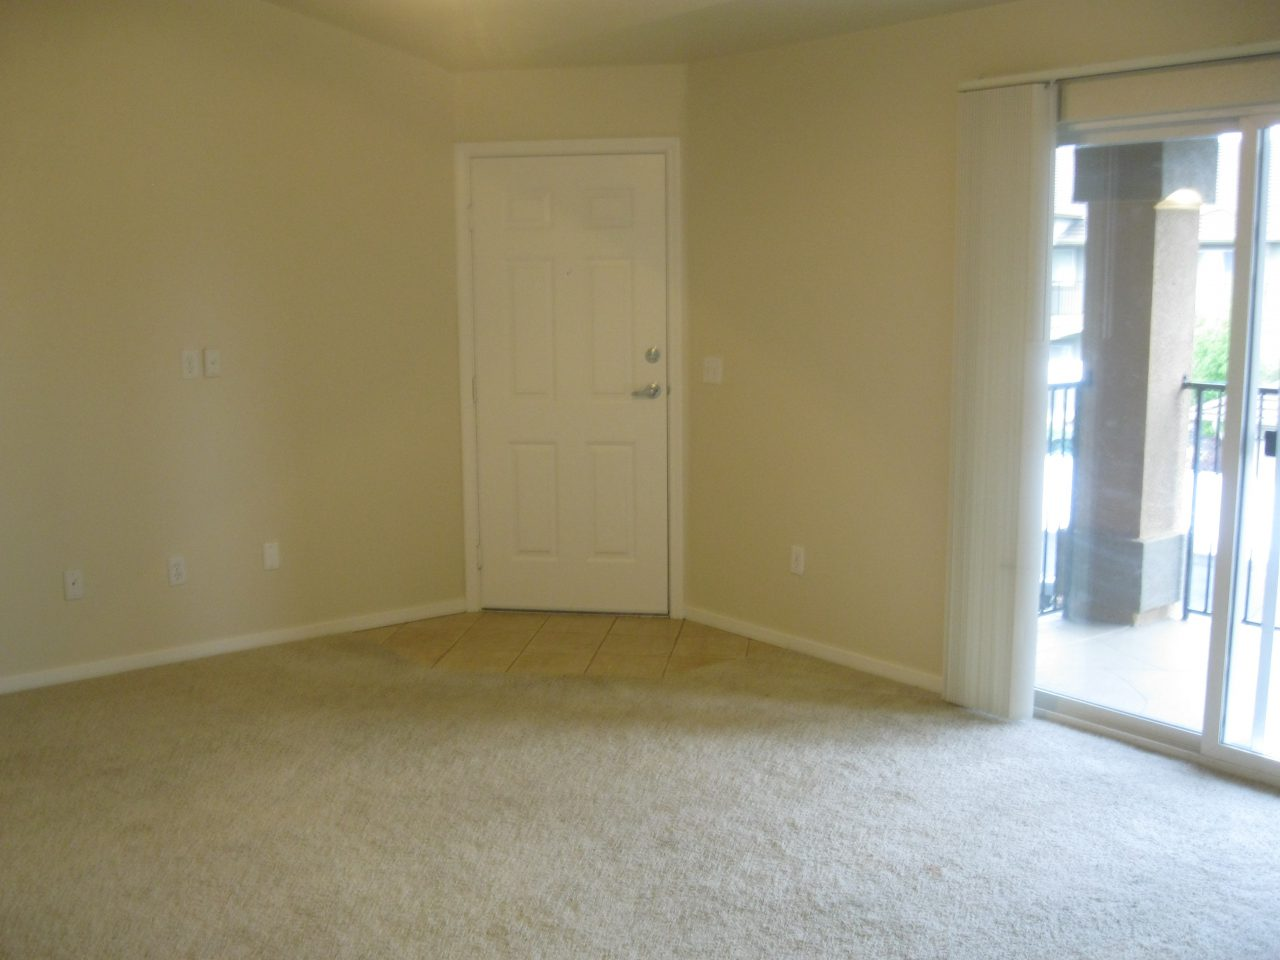 silver-creek-living-room-2-e1485140805540